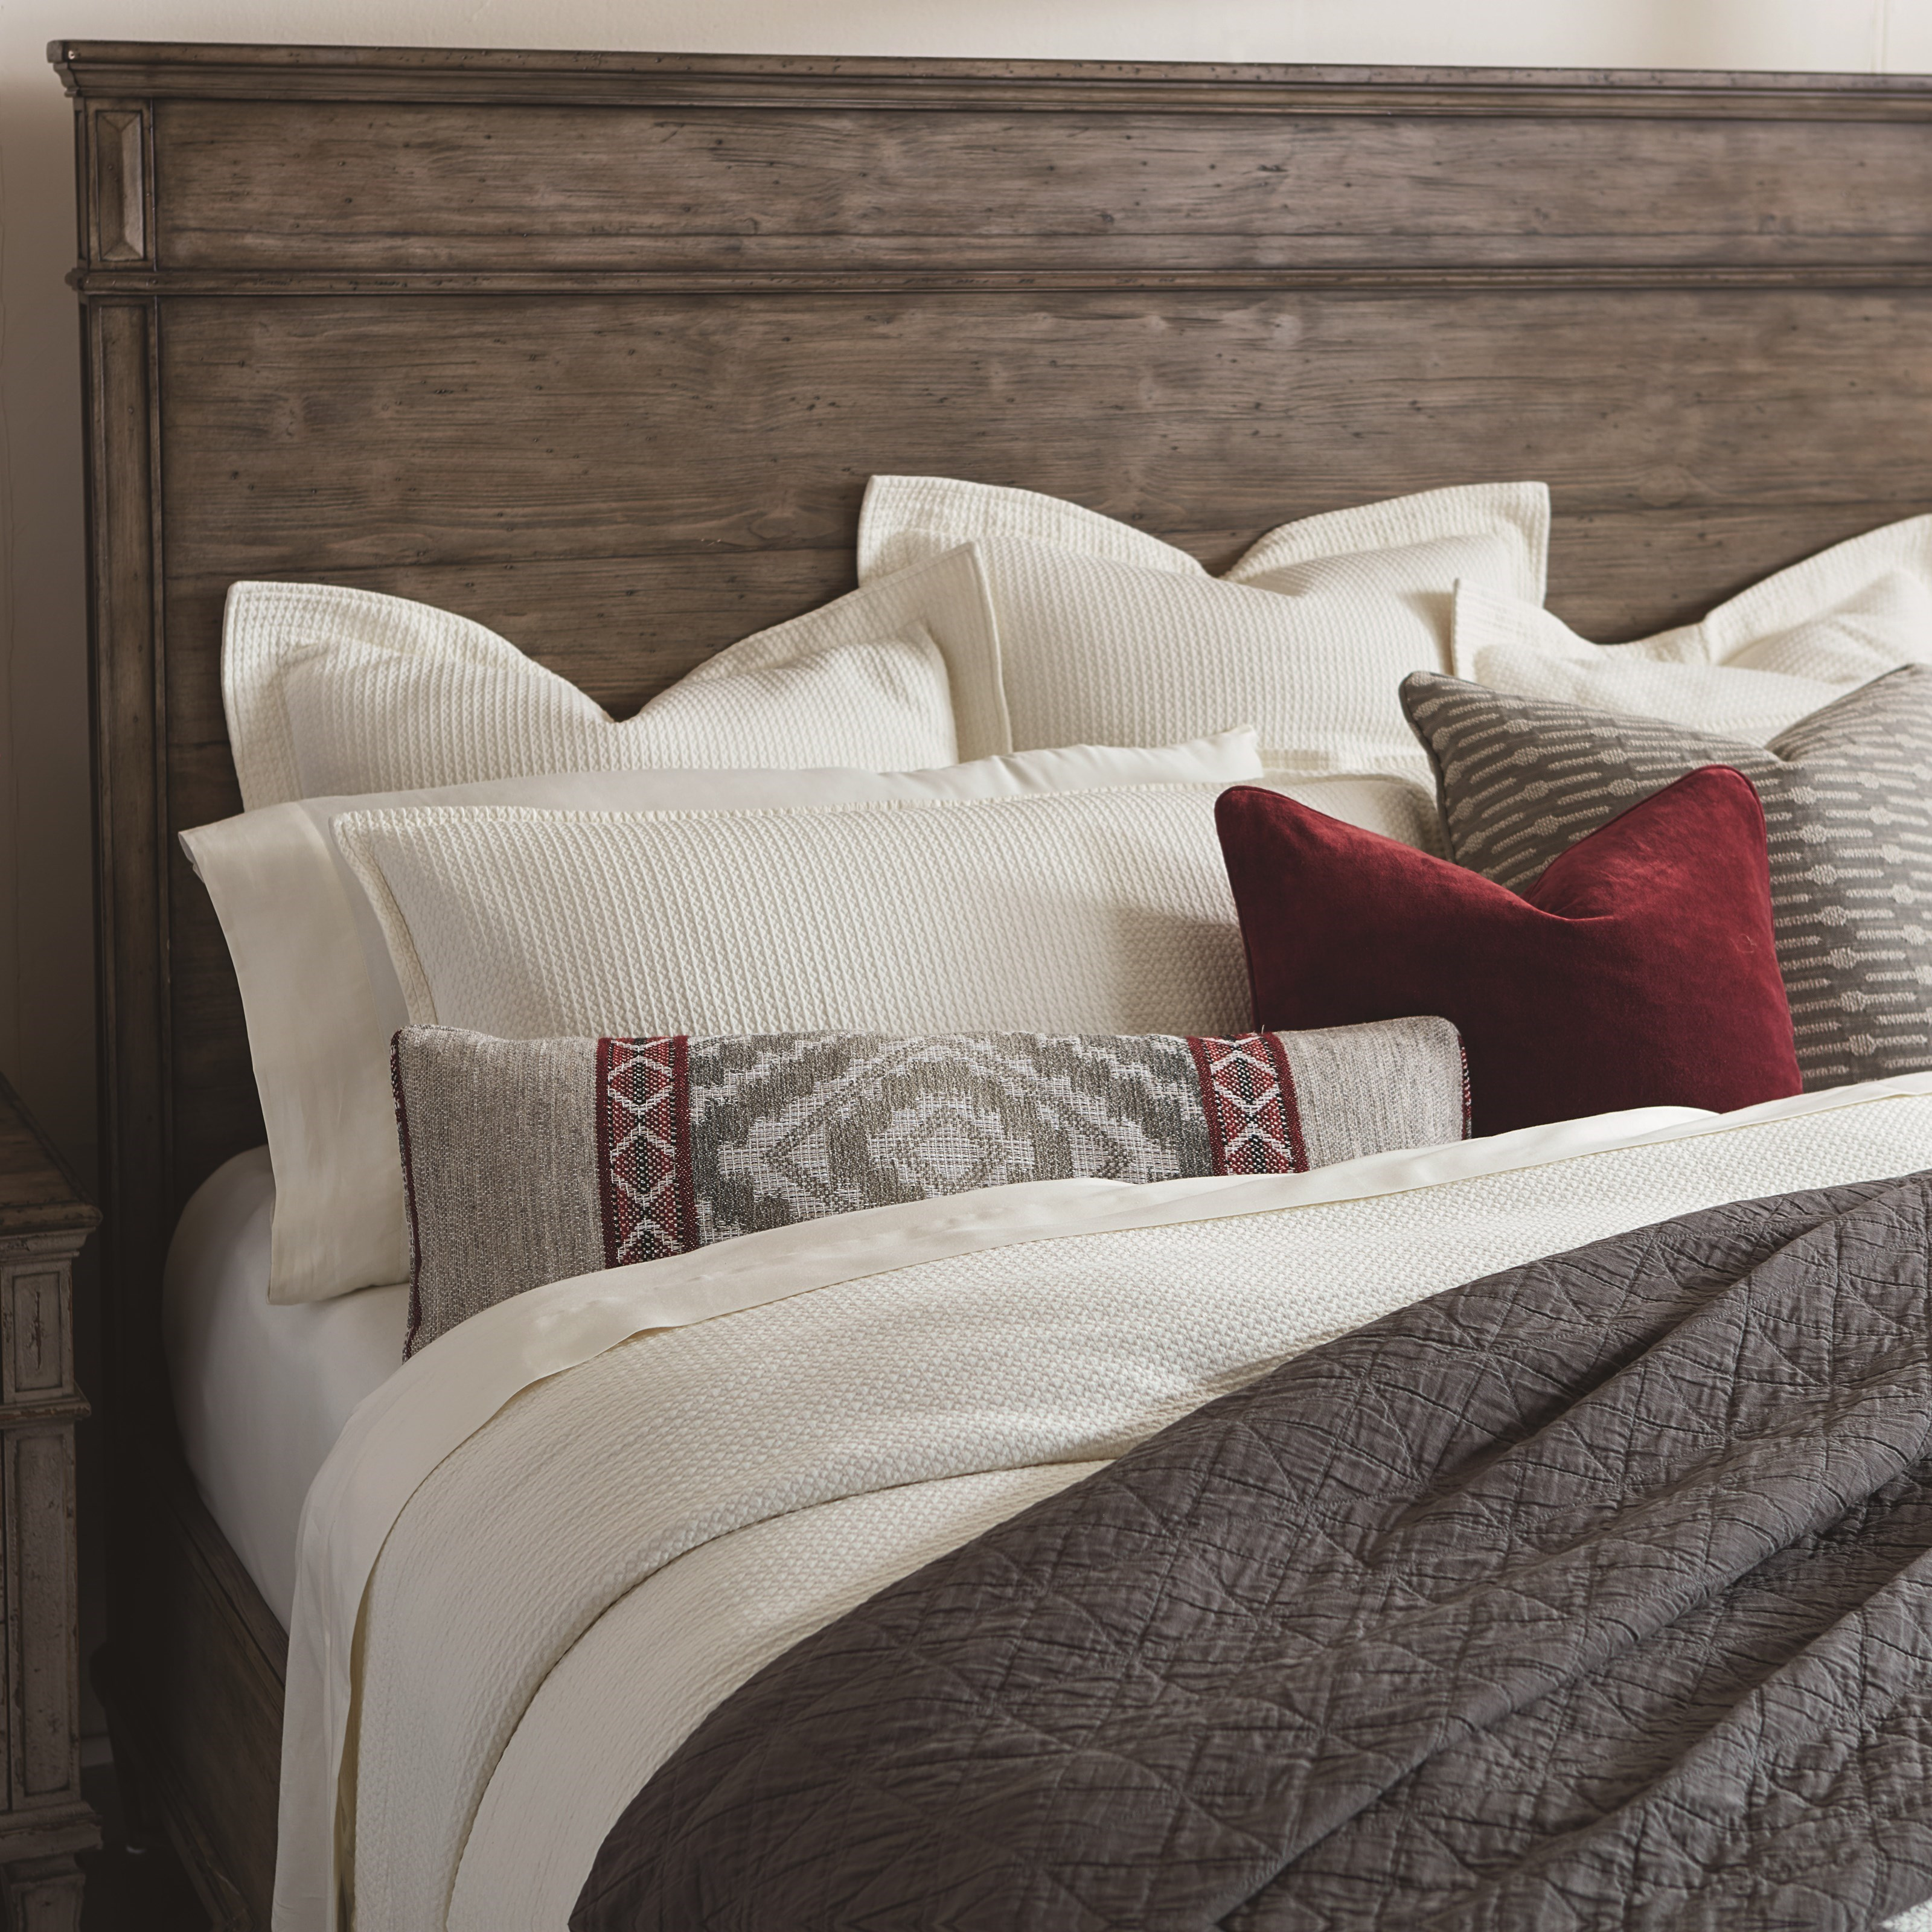 Verona Queen Panel Headboard by Bassett at VanDrie Home Furnishings